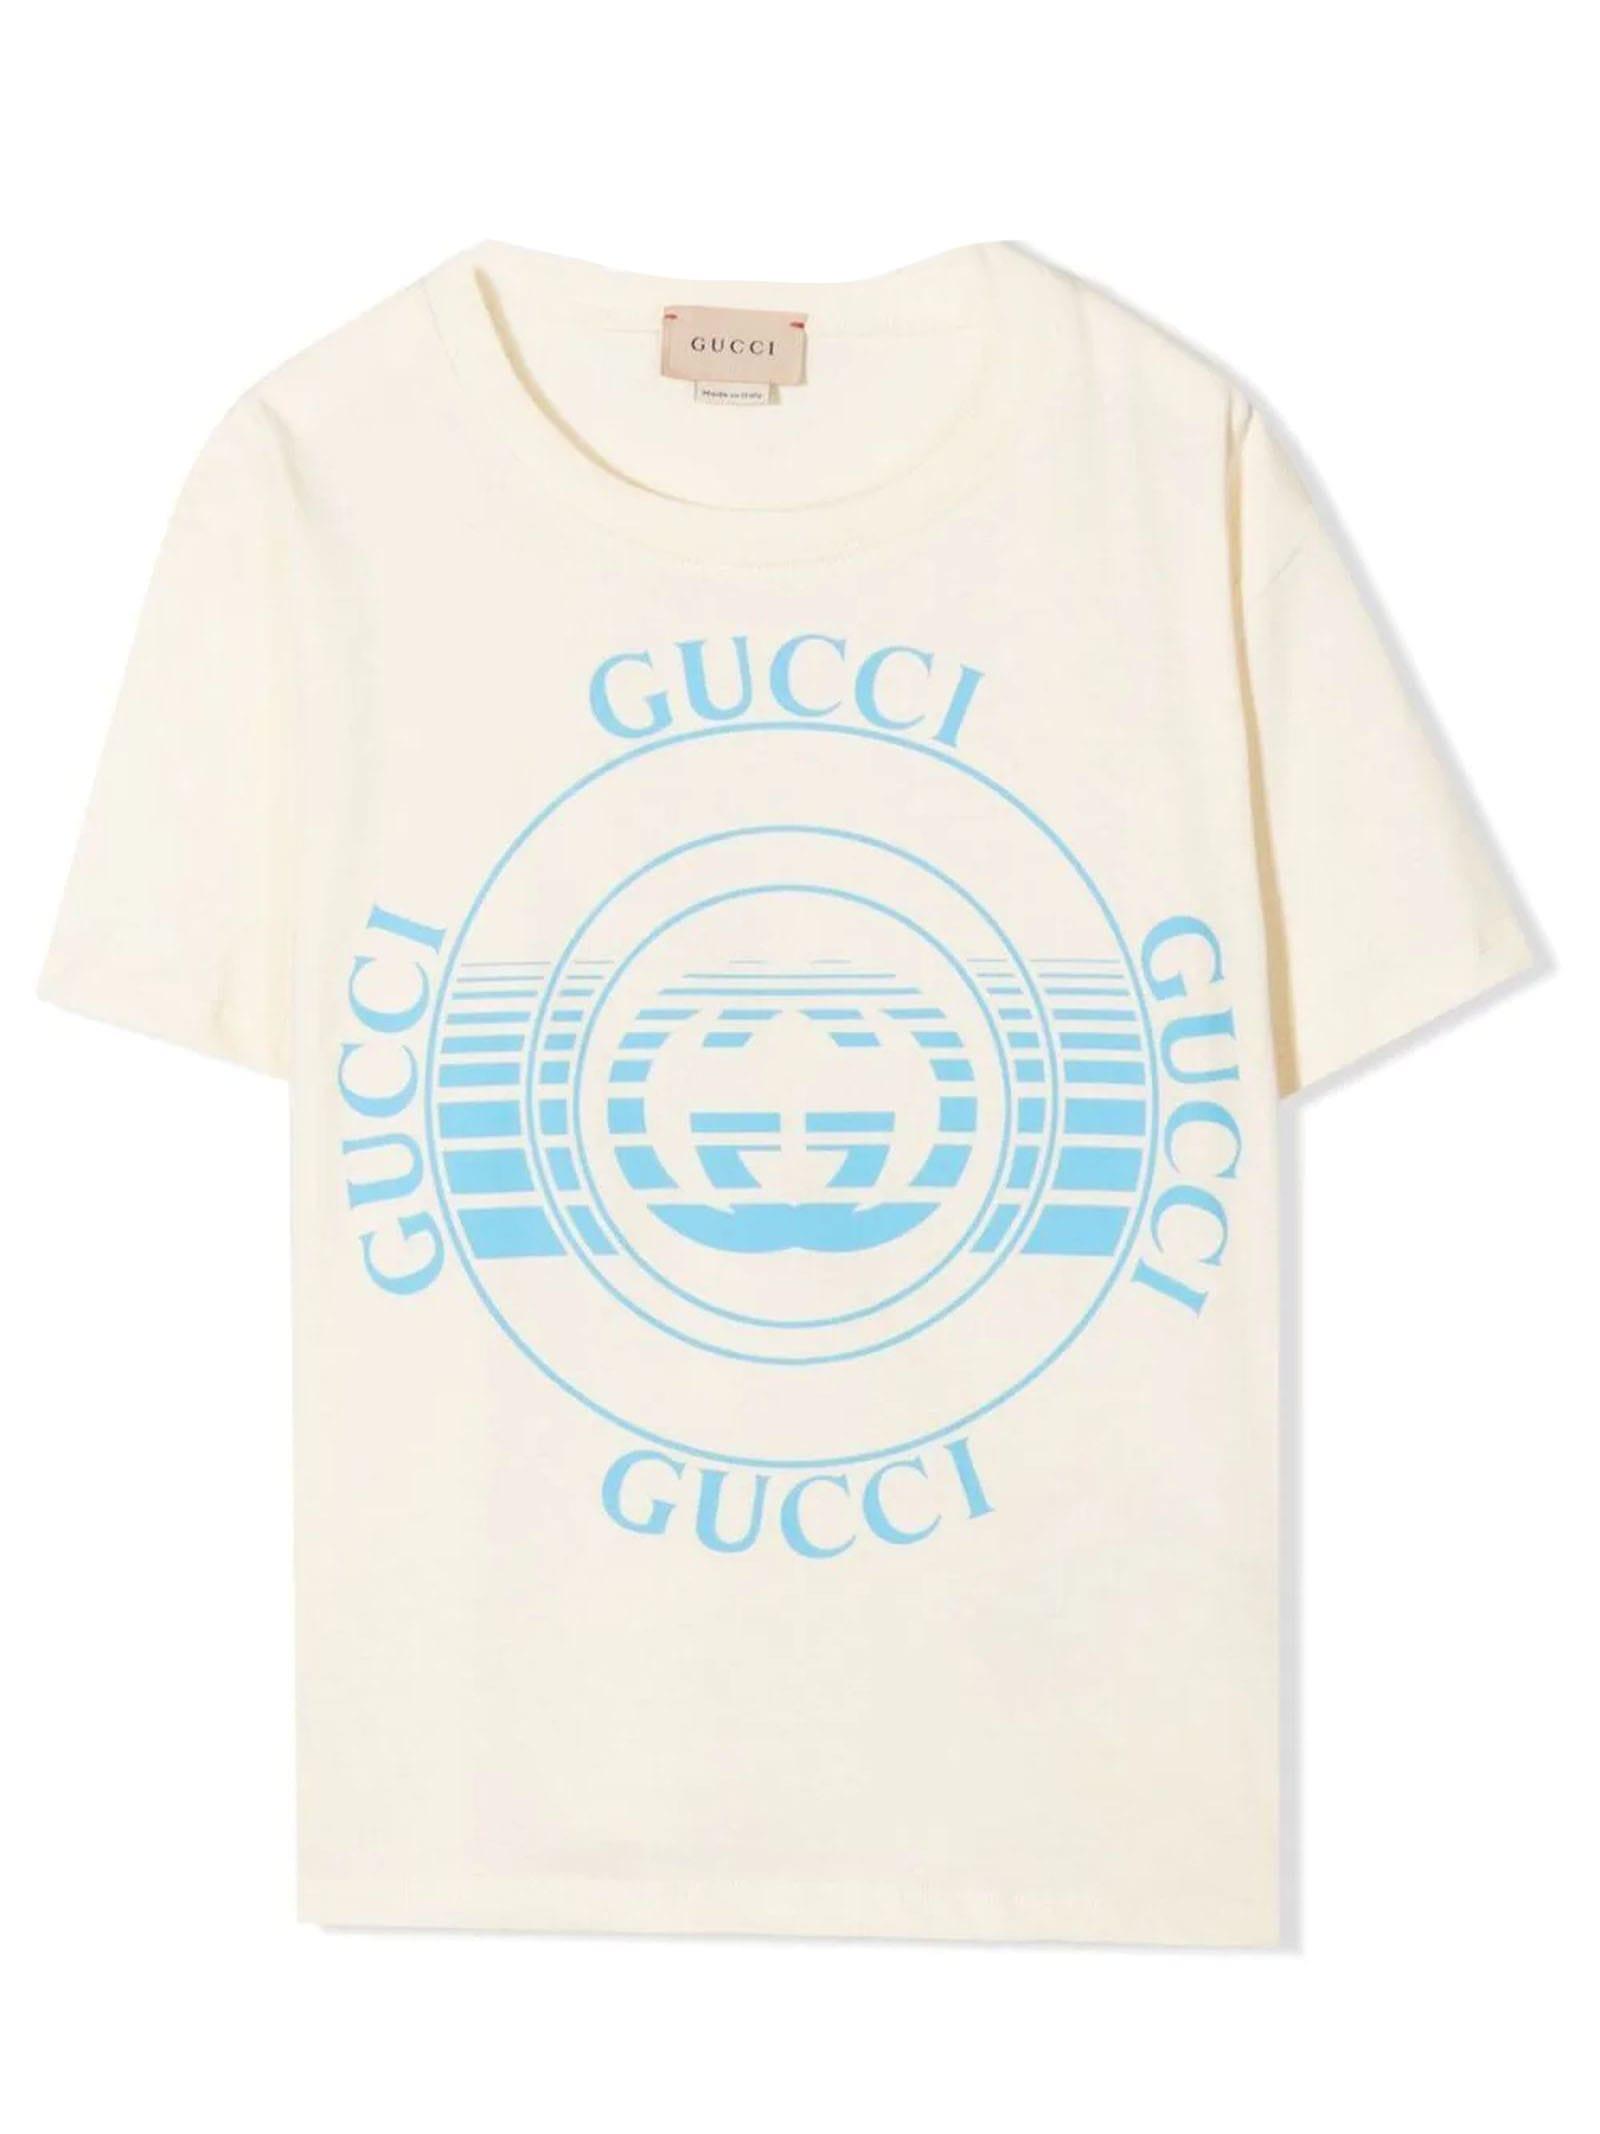 Gucci White Cotton T-shirt